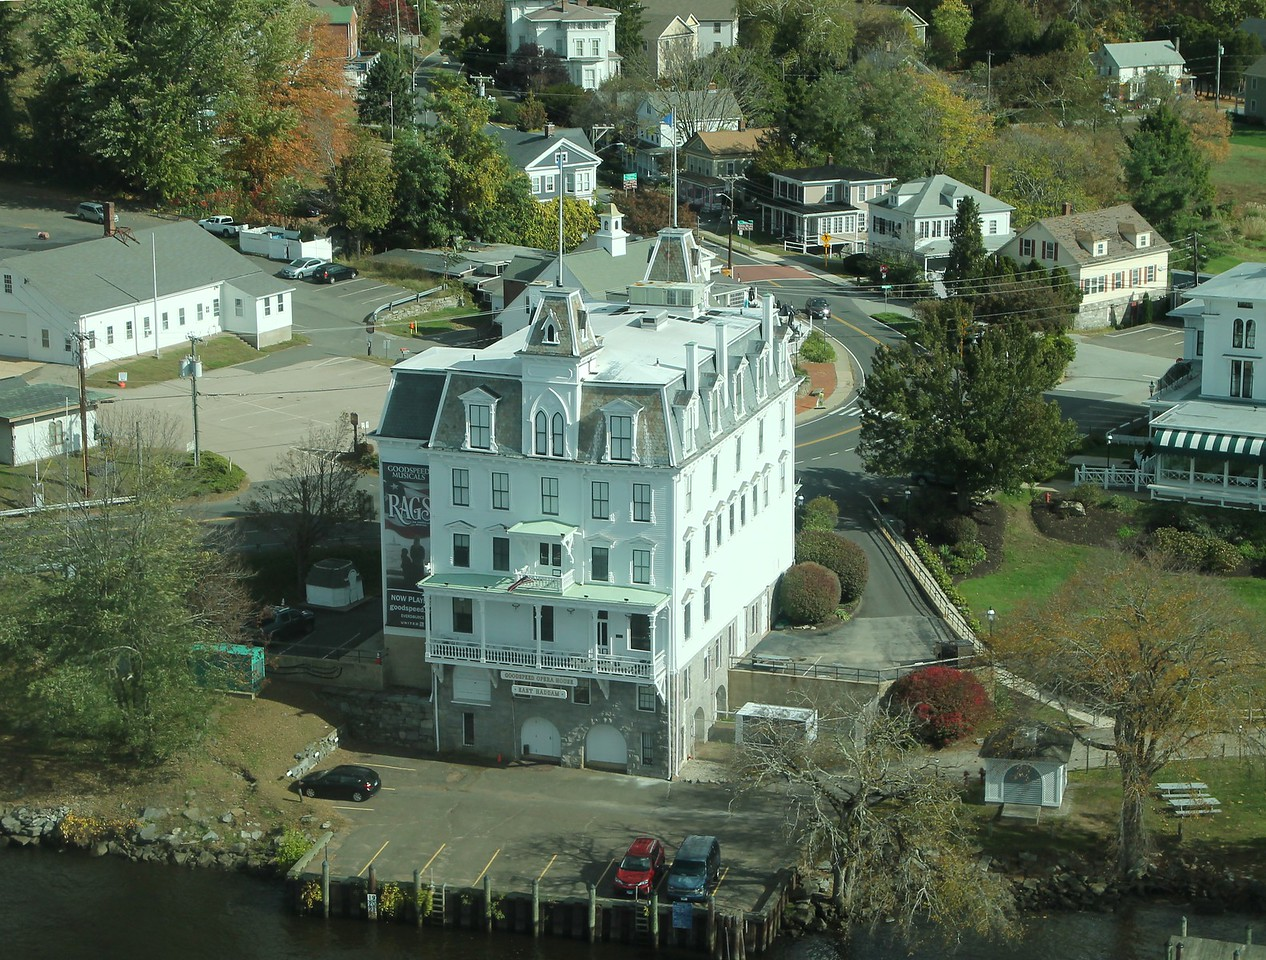 Goodspeed Opera House - East Haddam